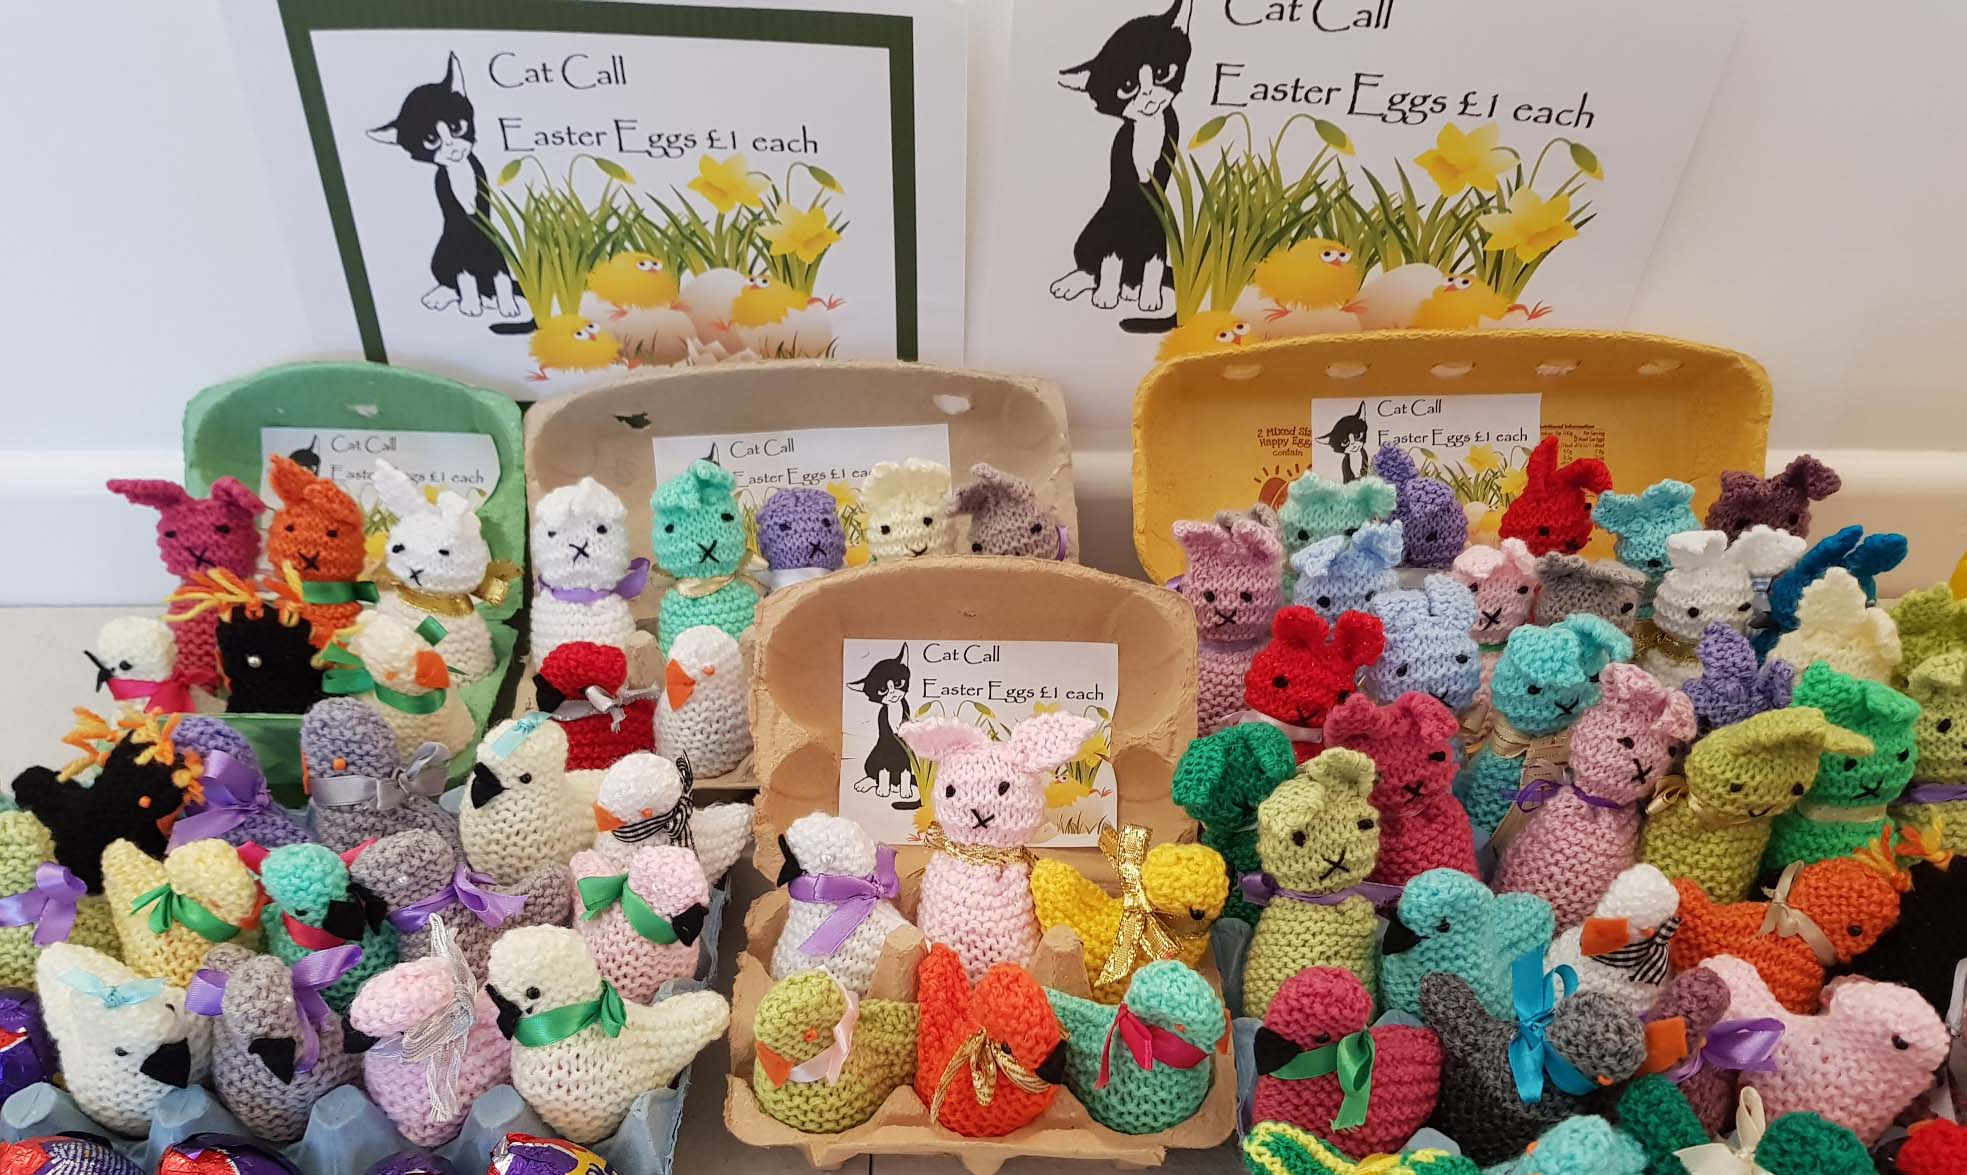 All ready for our Cat Call Easter Sale